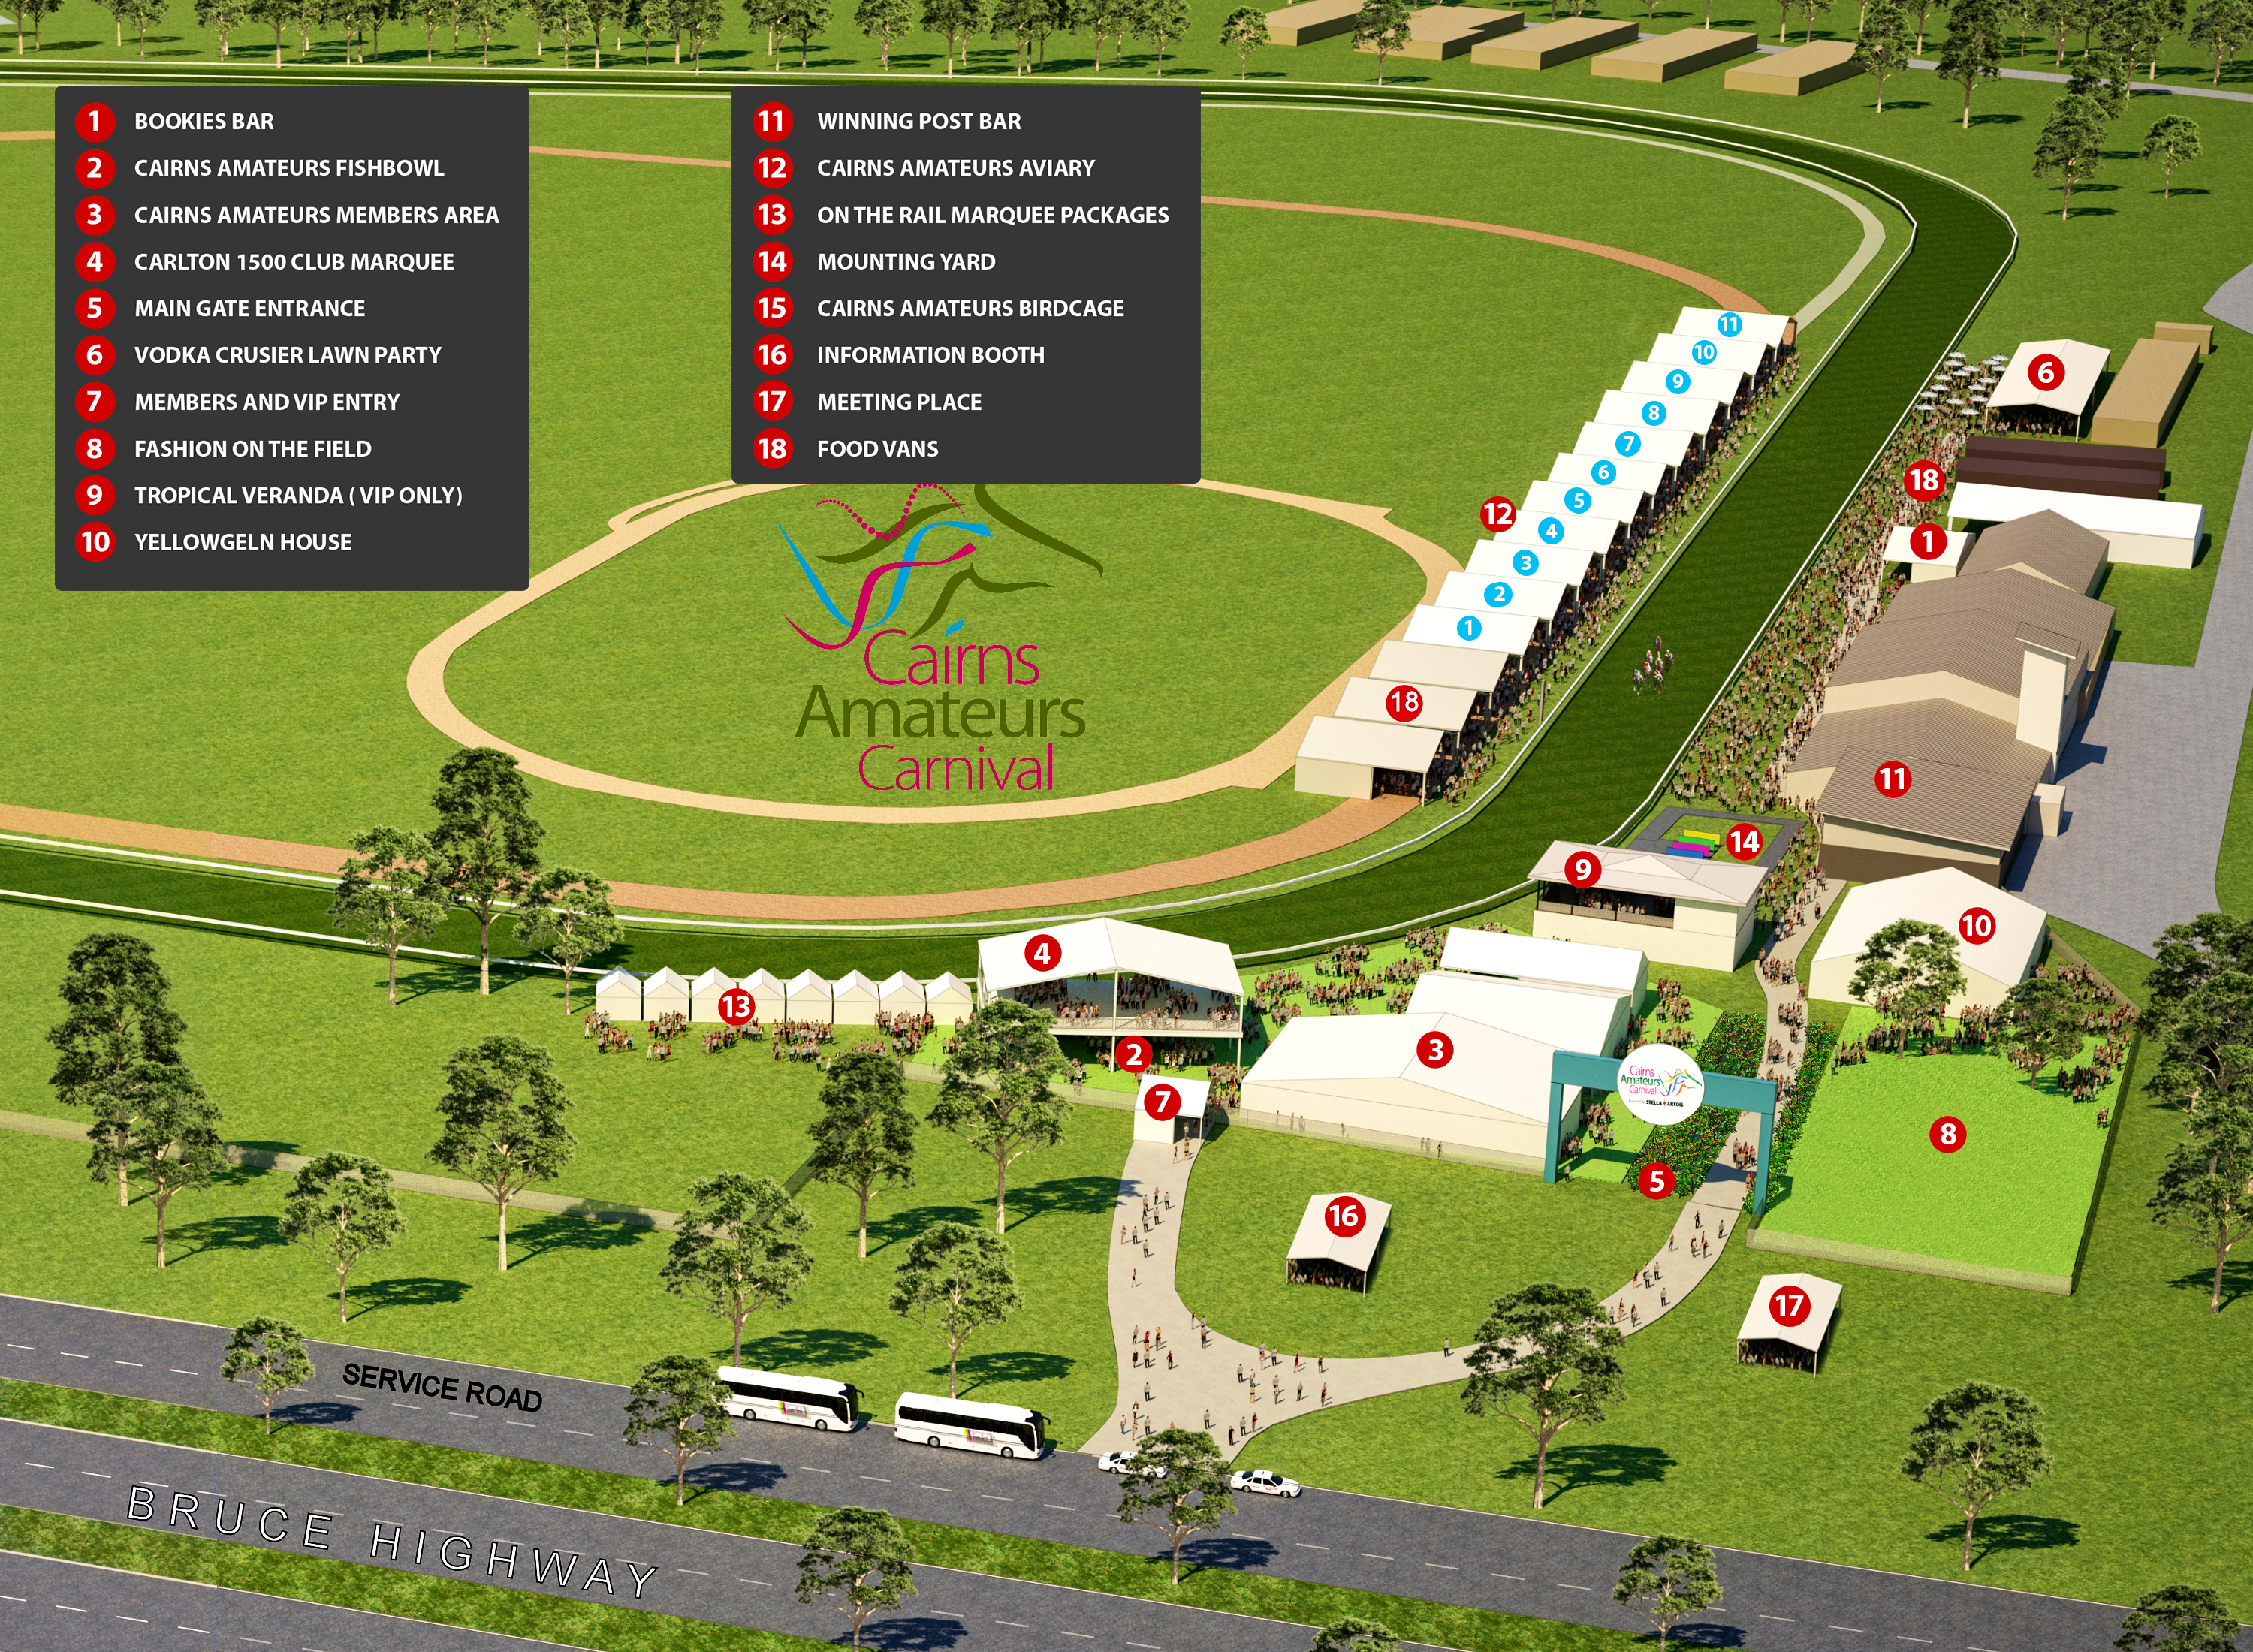 2019 Cairns Amateurs Carnival Map